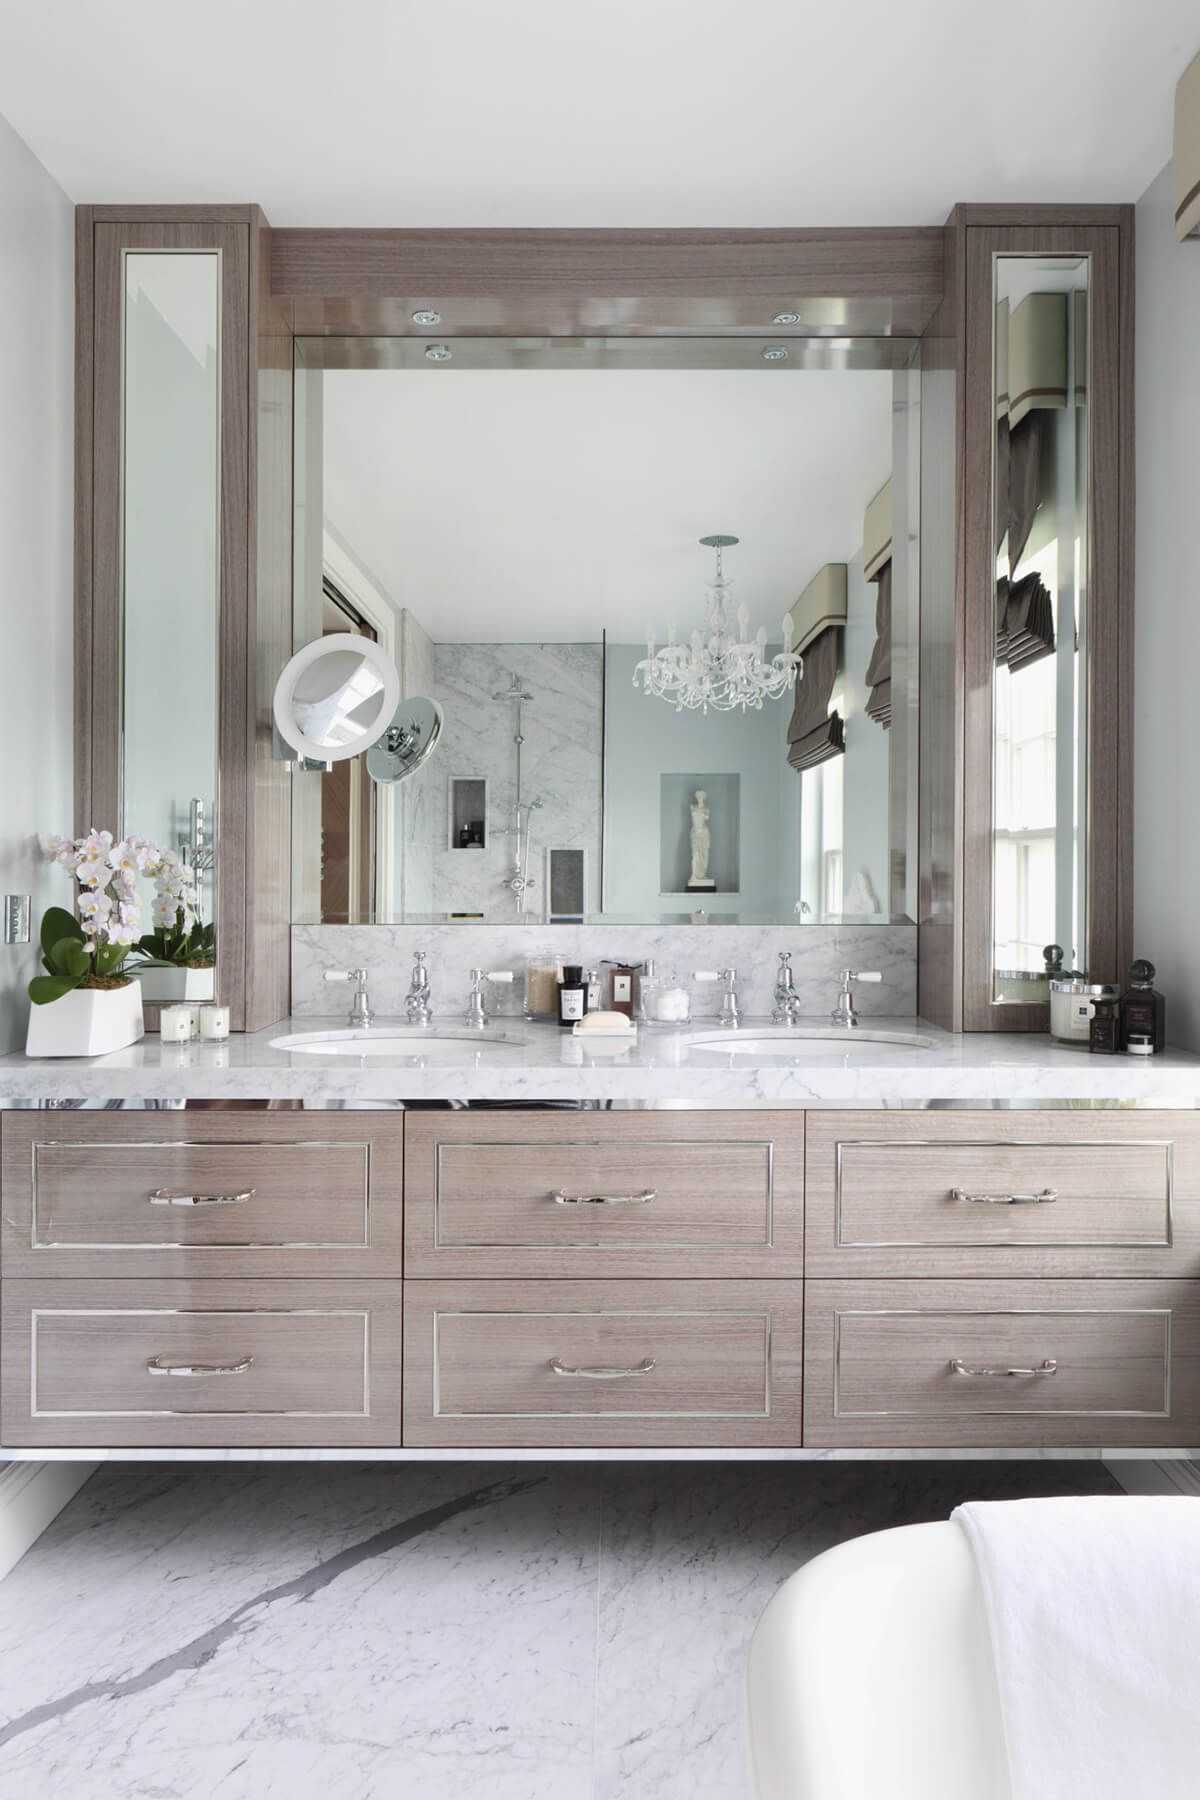 32 Rustic to Ultra Modern Master Bathroom Ideas to Inspire Your Next